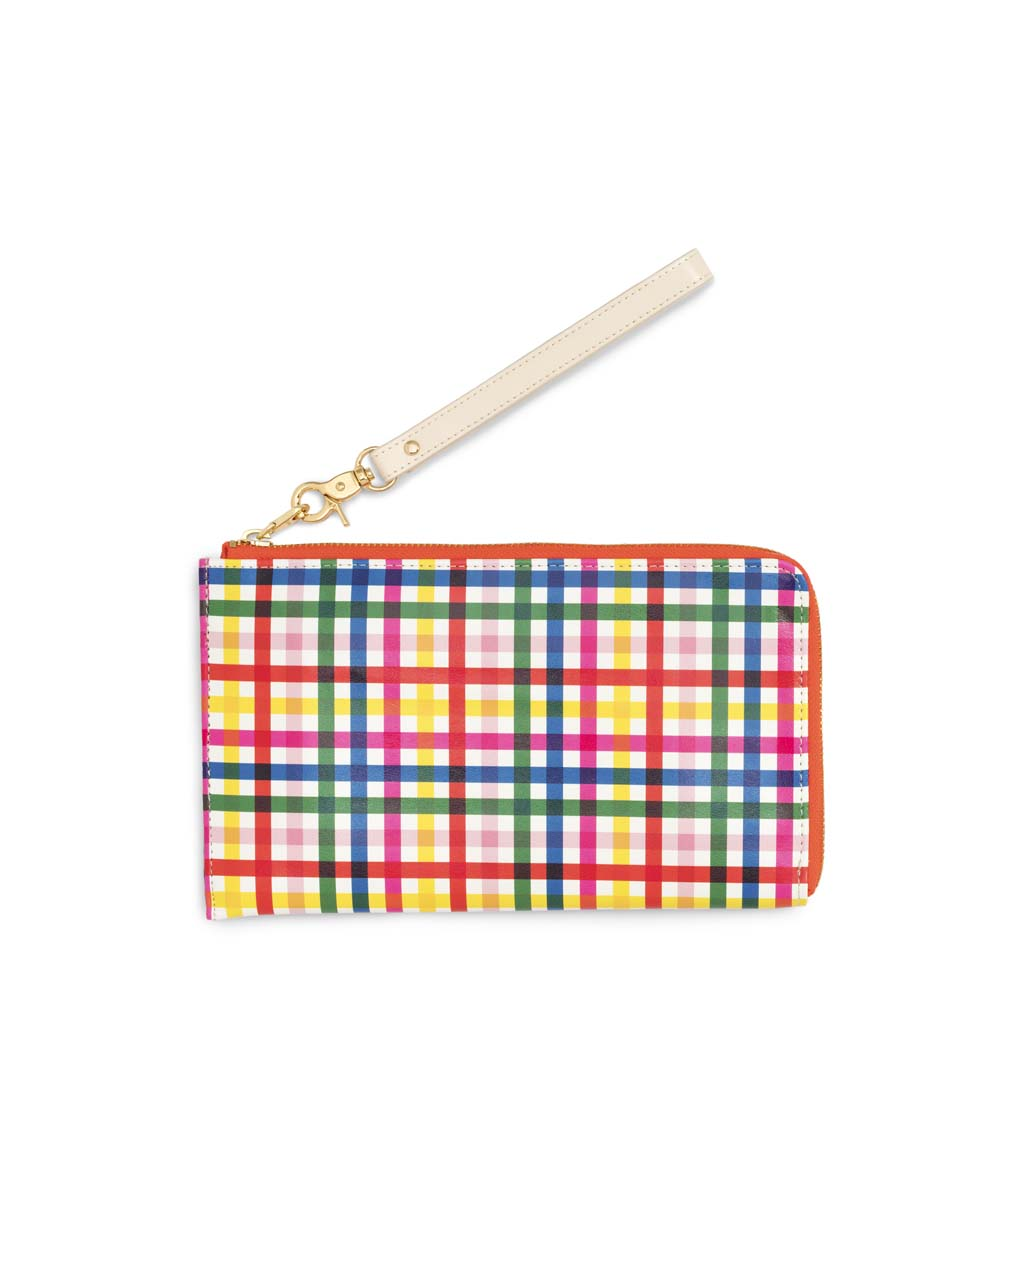 This Getaway Travel Wallet comes in a rainbow plaid pattern.